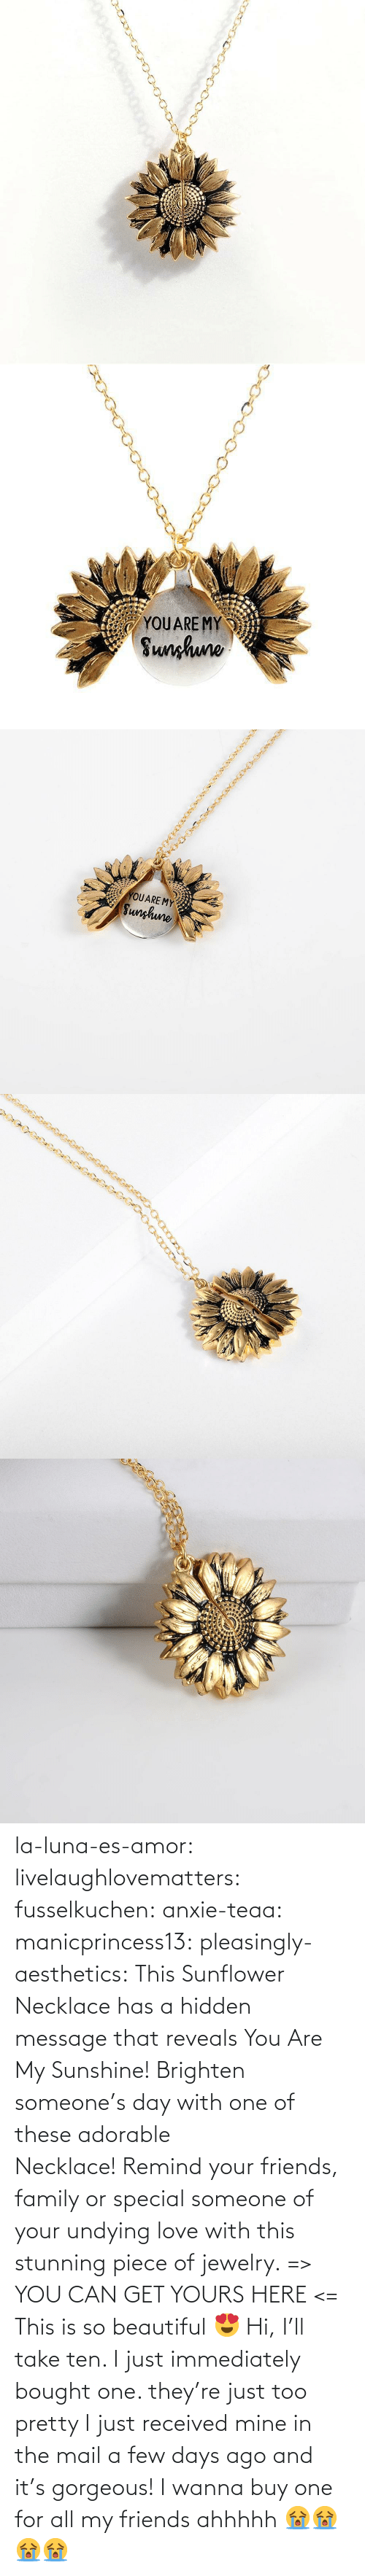 amor: YOUARE MY  Sunhuno   YOUARE MY  Sunghune la-luna-es-amor: livelaughlovematters:  fusselkuchen:  anxie-teaa:   manicprincess13:   pleasingly-aesthetics:  This Sunflower Necklace has a hidden message that reveals You Are My Sunshine! Brighten someone's day with one of these adorable Necklace! Remind your friends, family or special someone of your undying love with this stunning piece of jewelry. => YOU CAN GET YOURS HERE <=   This is so beautiful 😍    Hi, I'll take ten.    I just immediately bought one. they're just too pretty   I just received mine in the mail a few days ago and it's gorgeous!   I wanna buy one for all my friends ahhhhh 😭😭😭😭